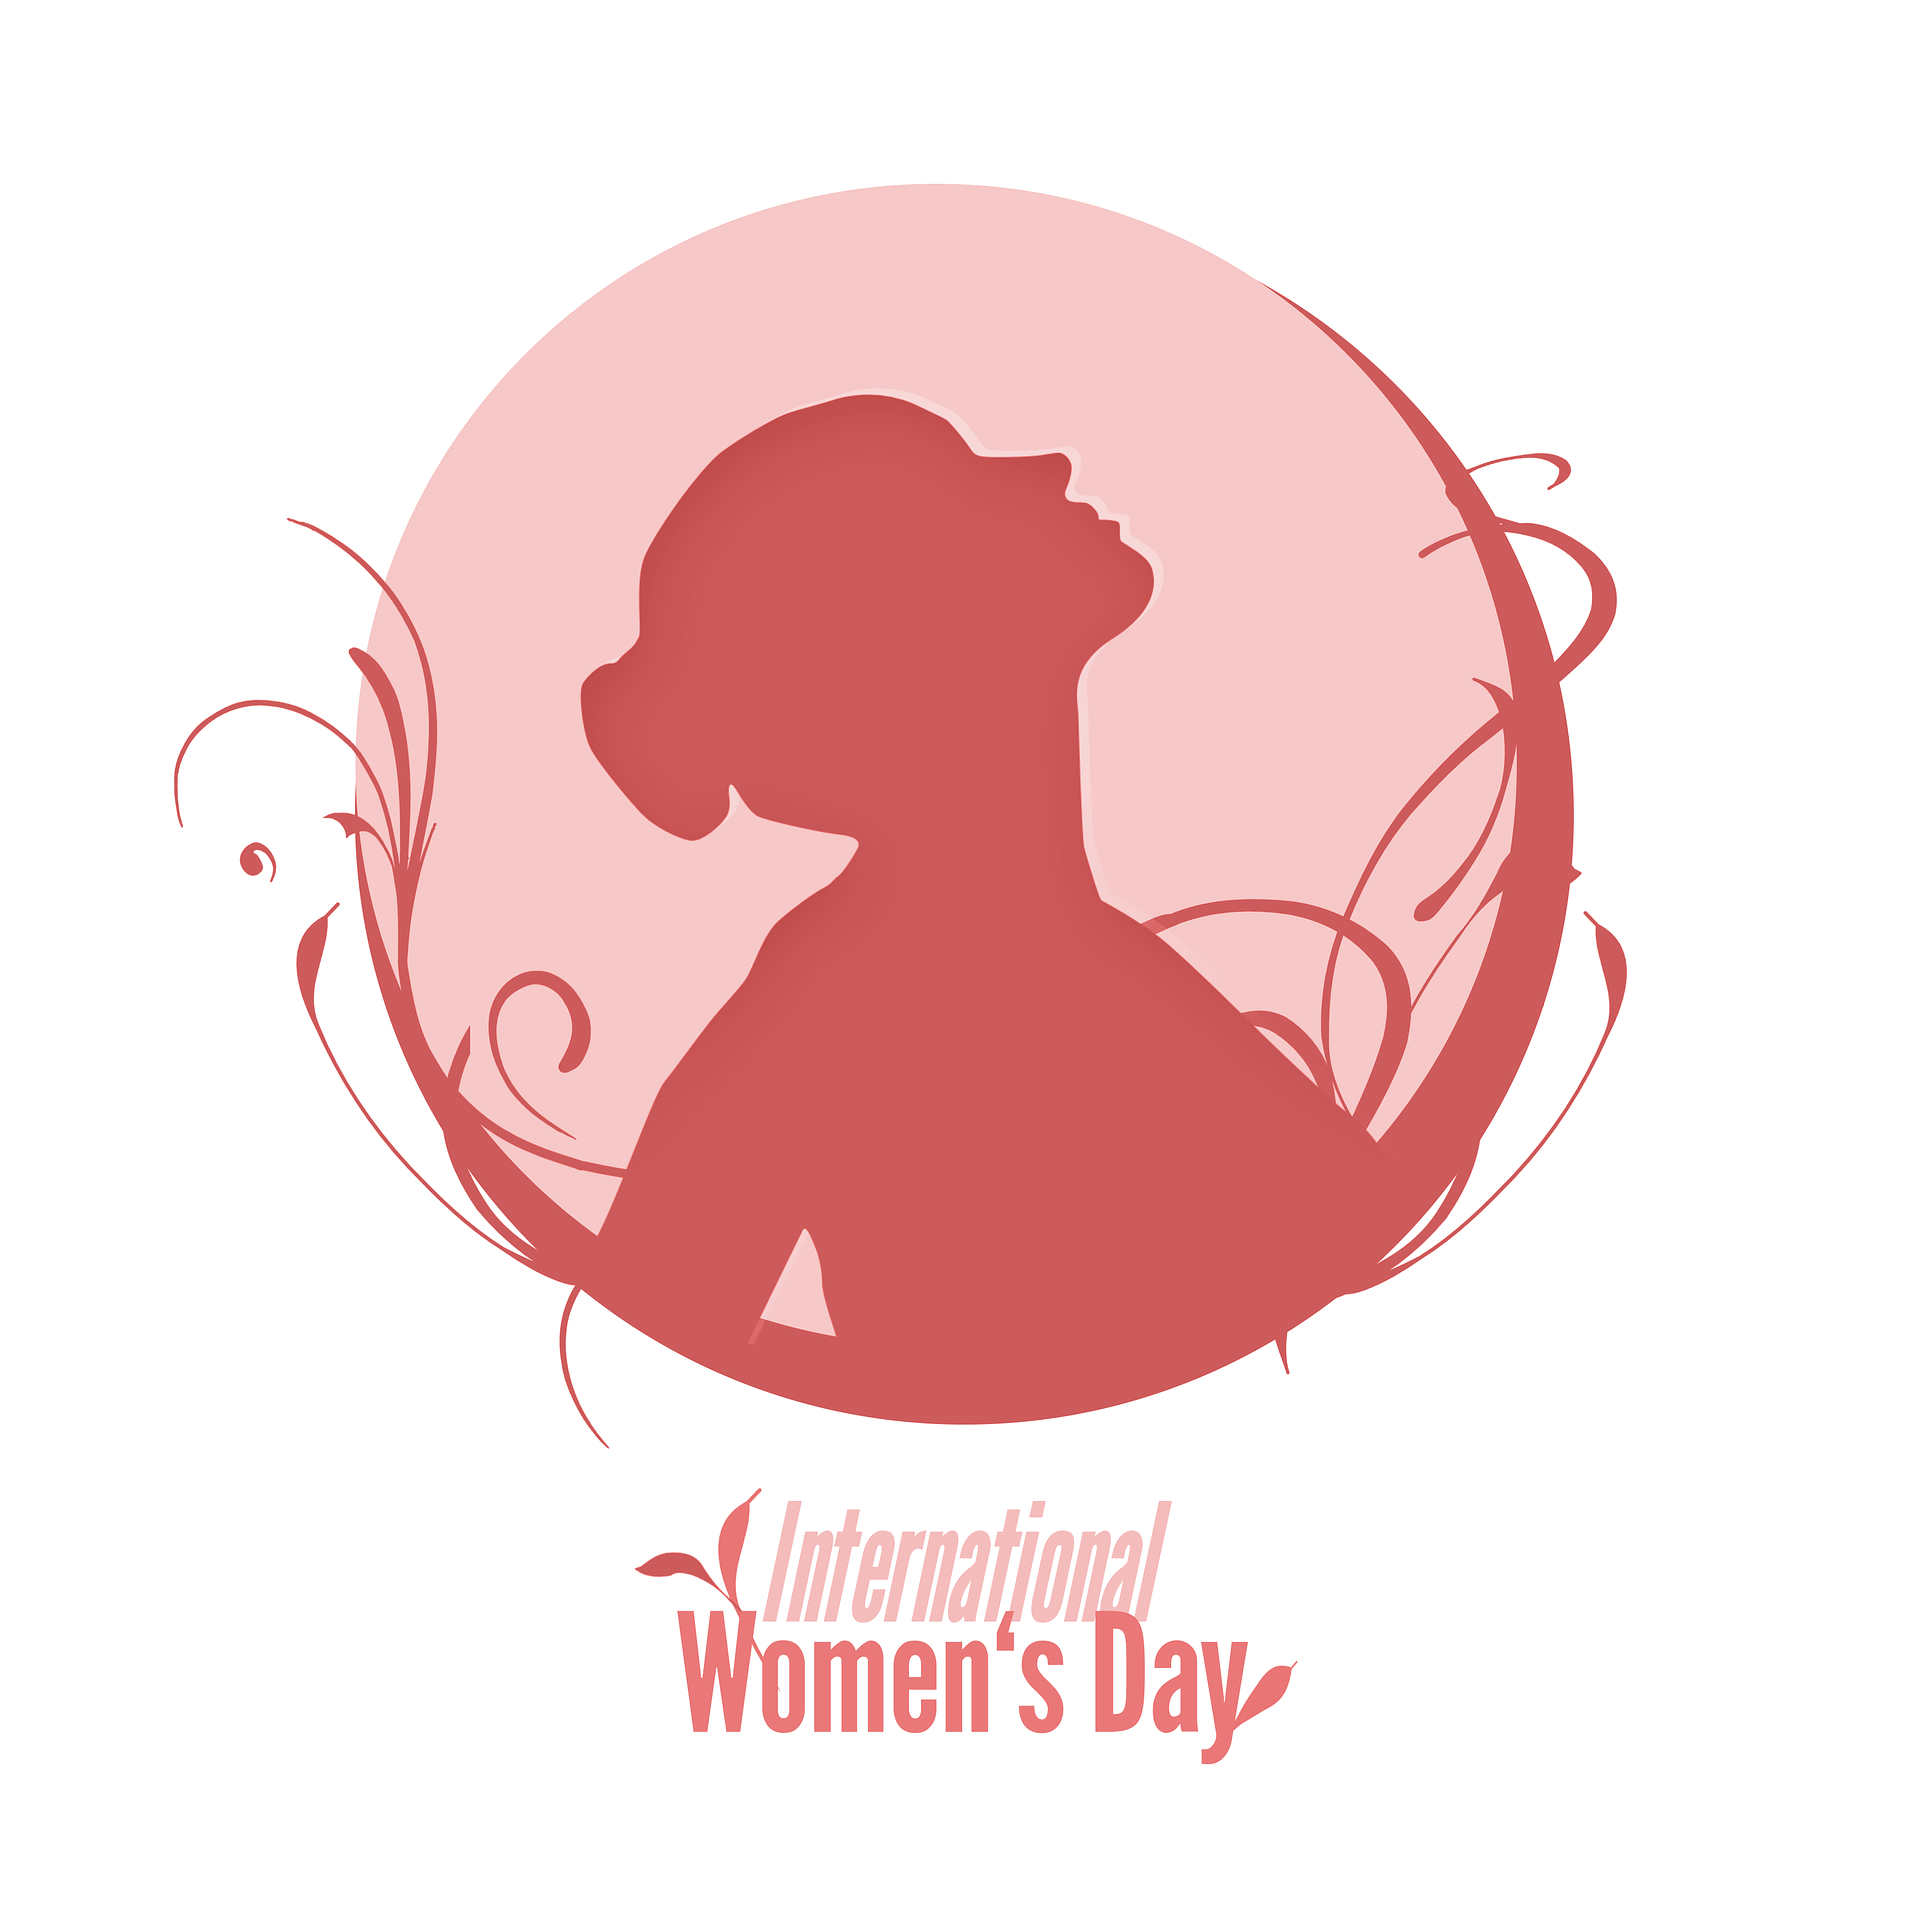 womens-day-3198006_1920.png